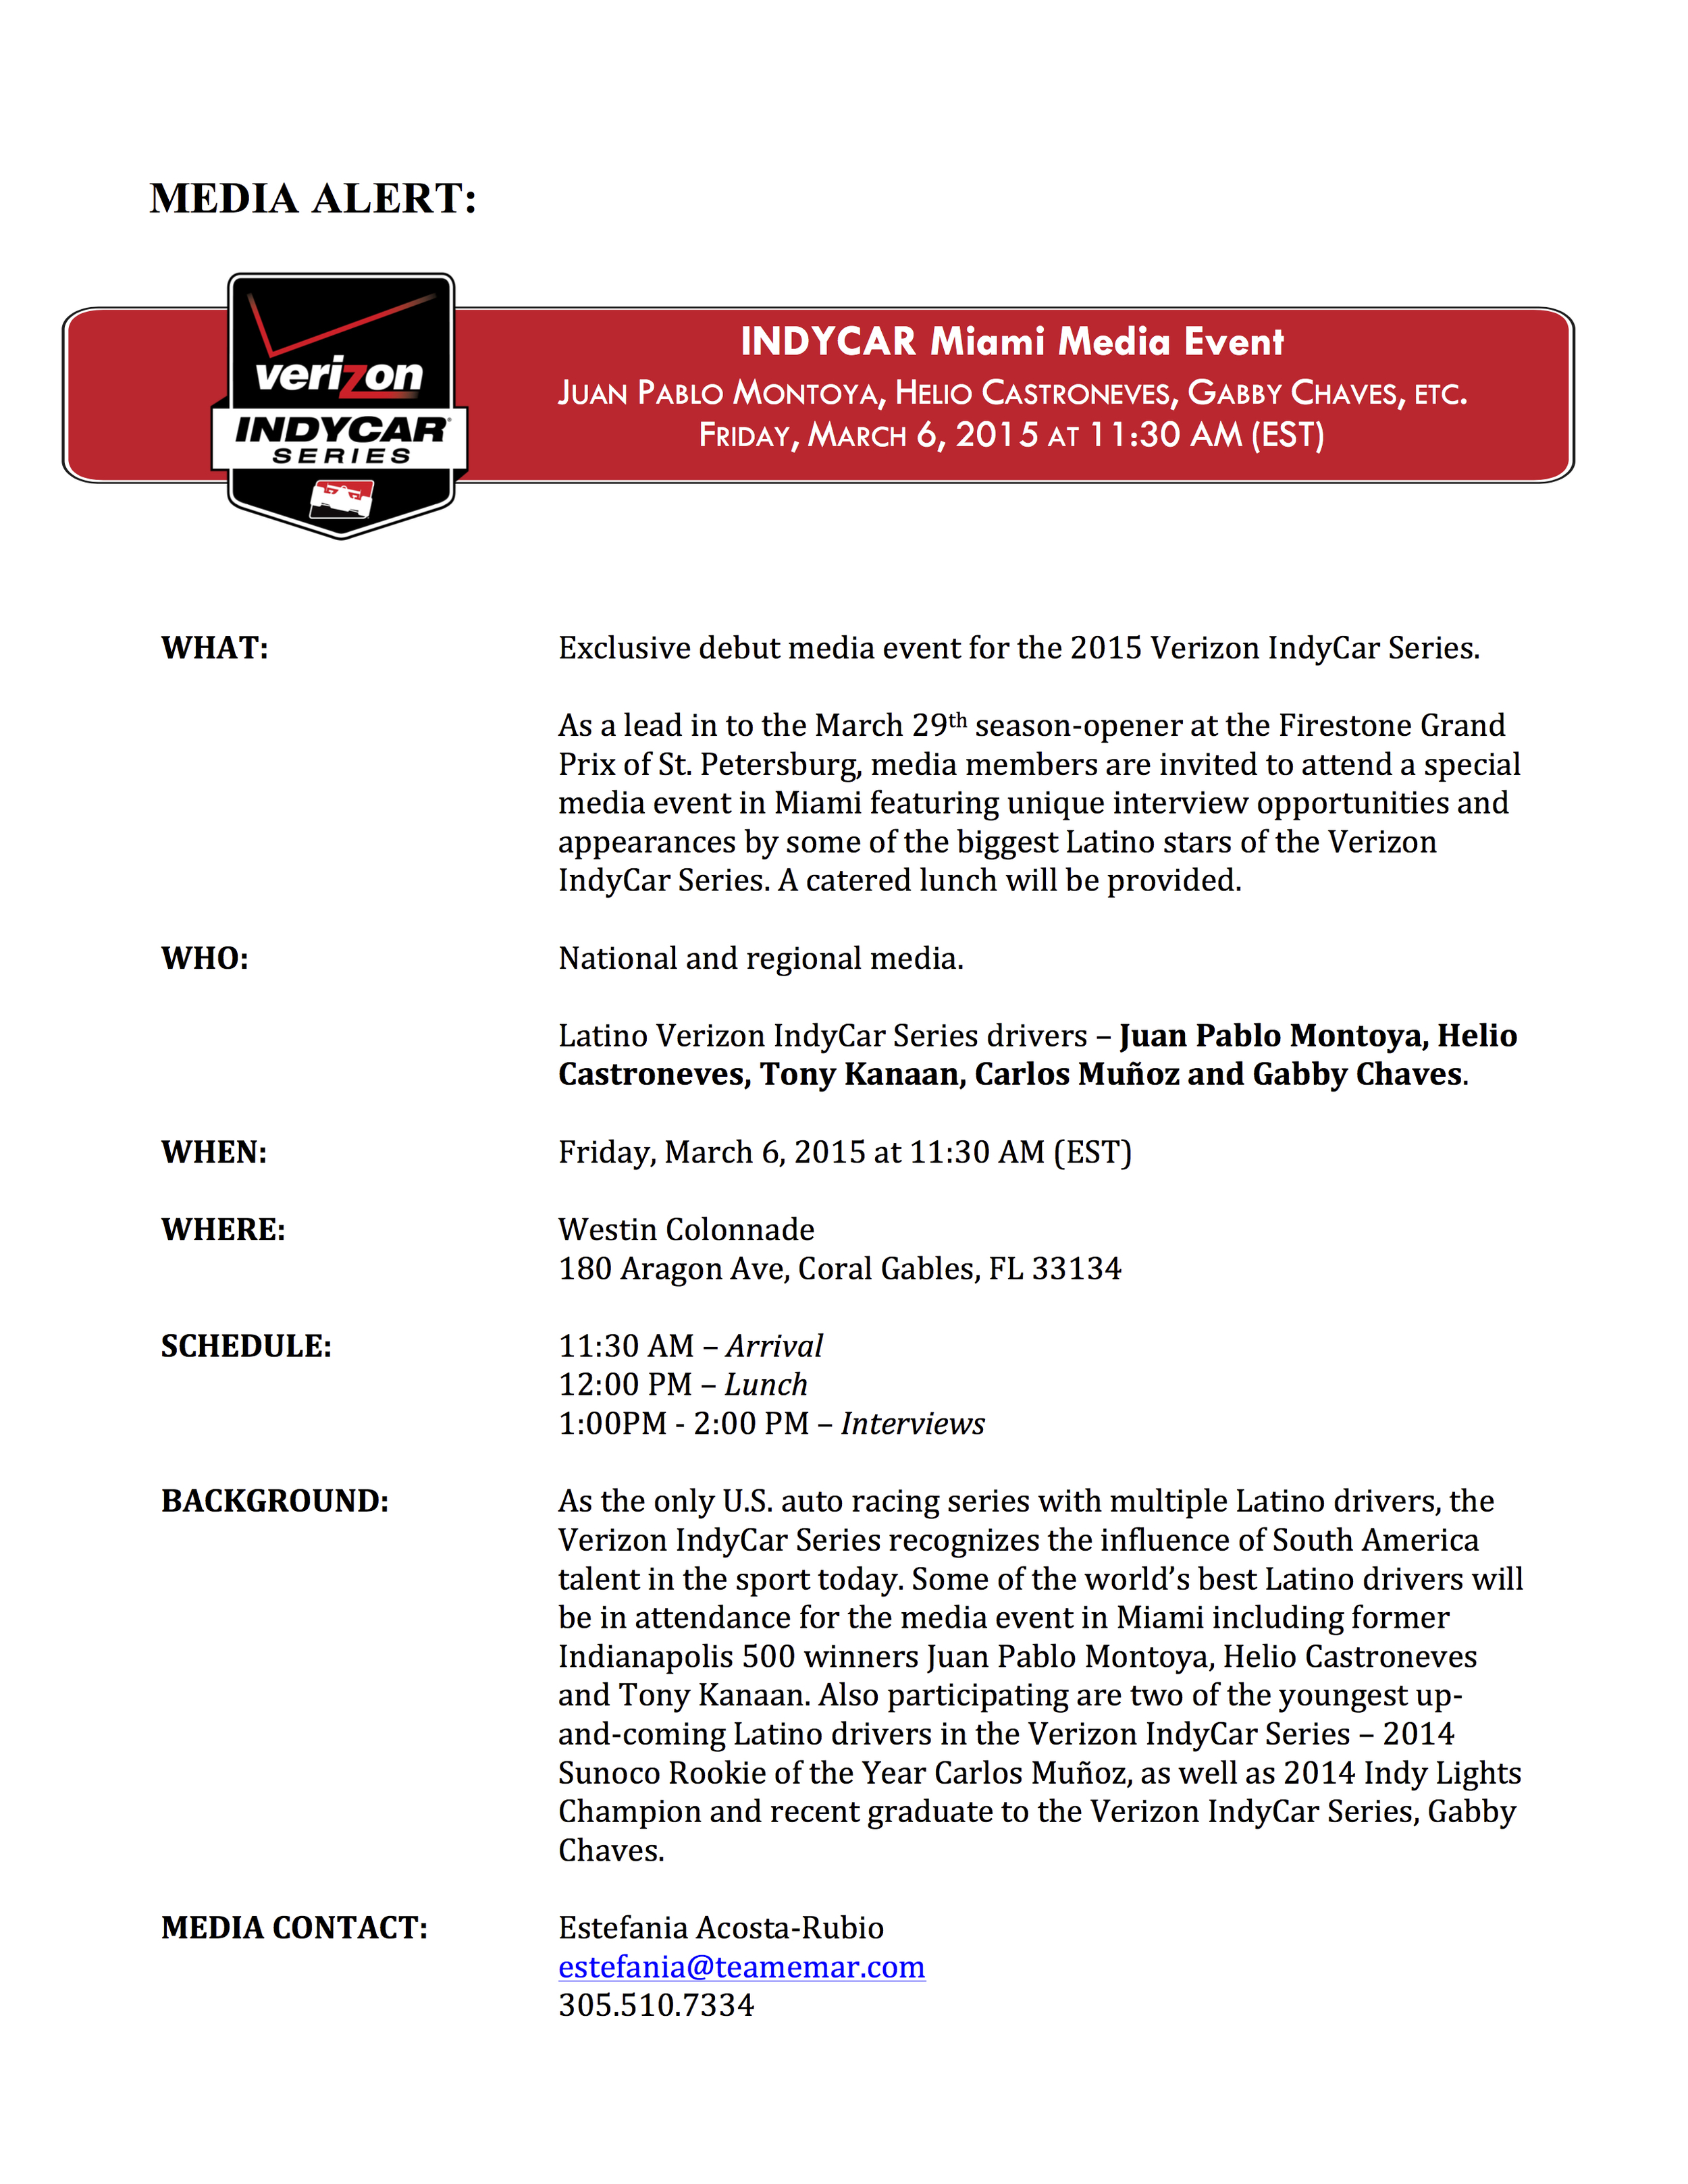 Media Alert - IndyCar Miami Media Event (English)